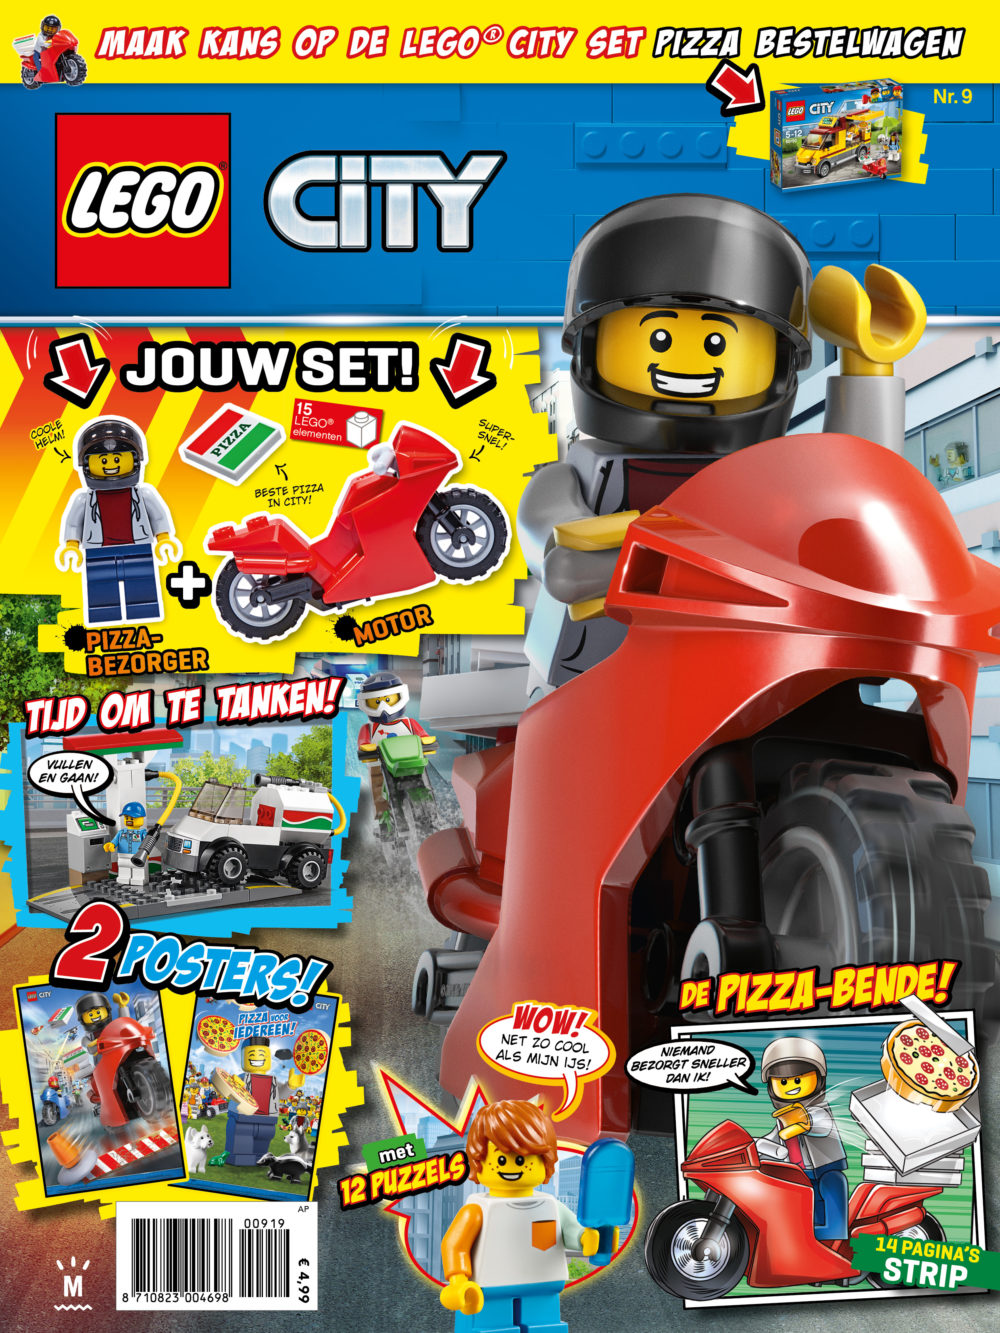 LEGO City magazine nr. 9